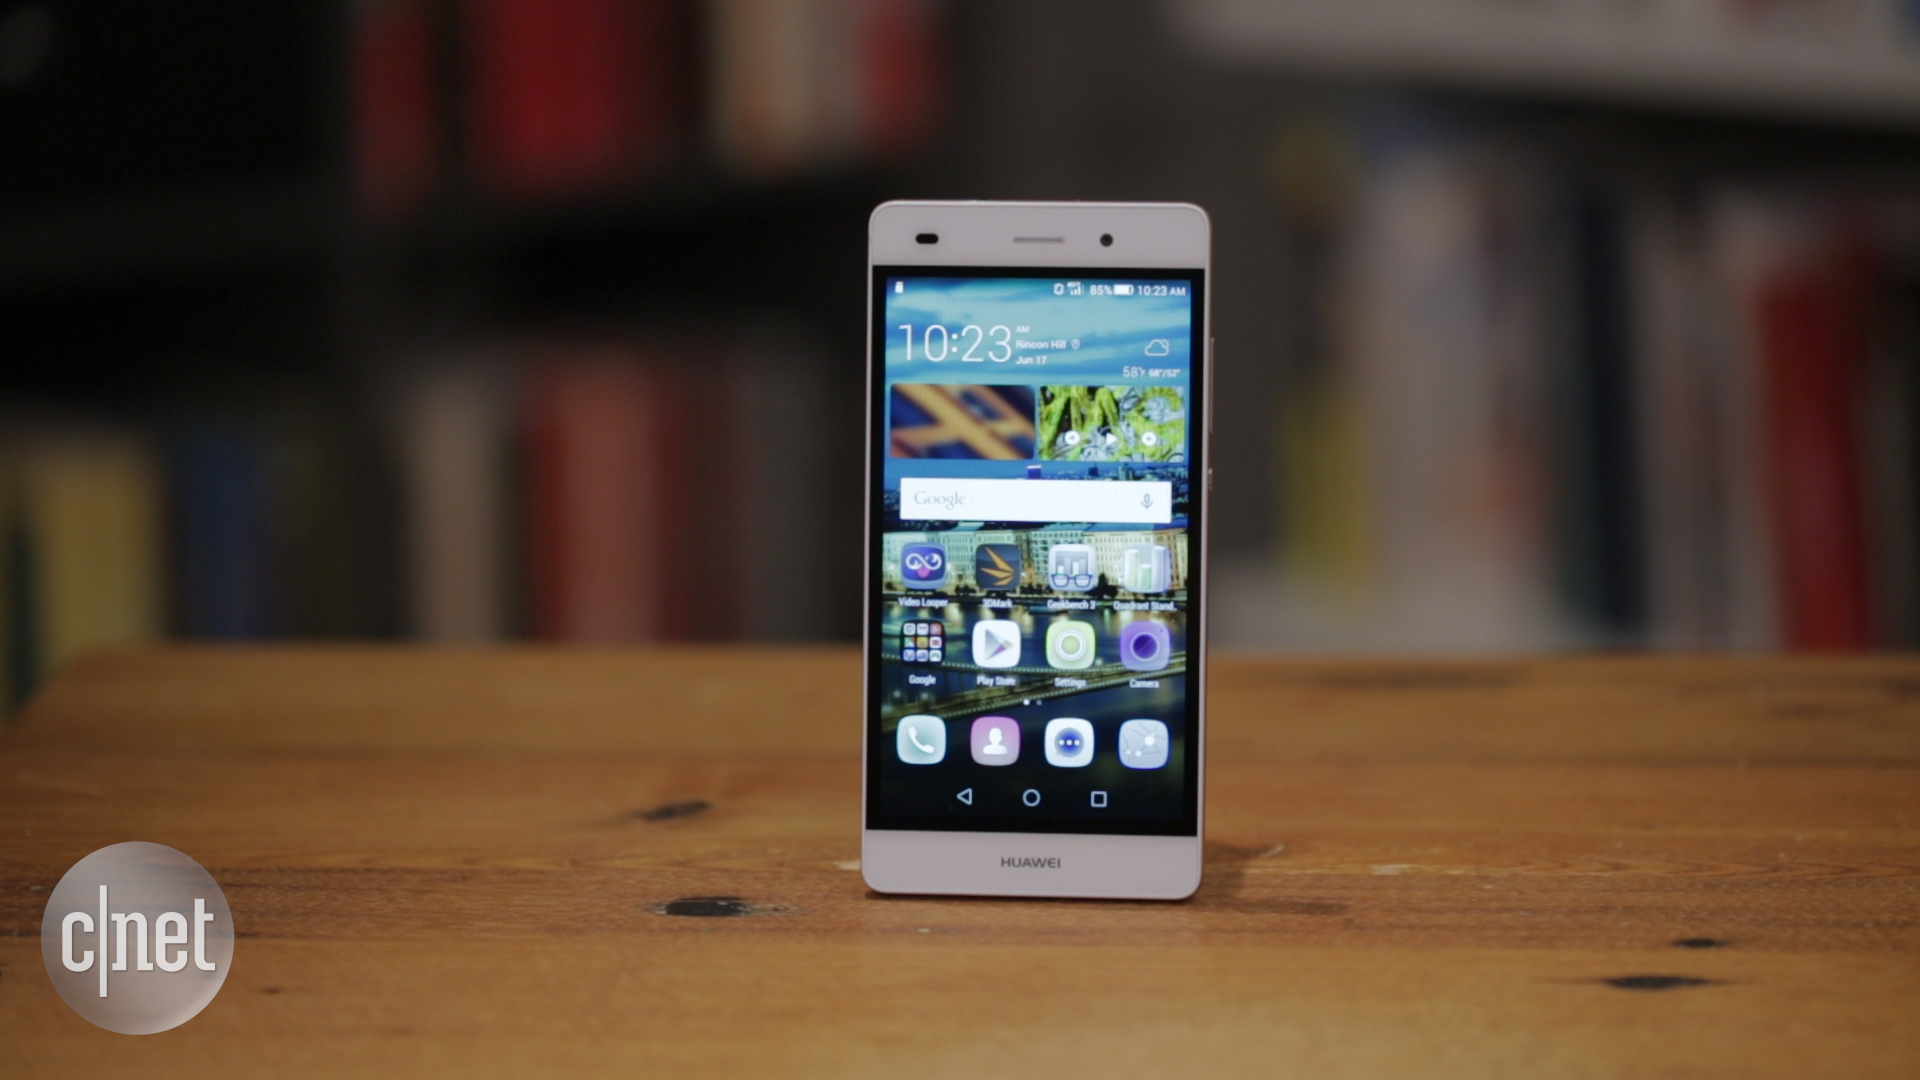 Video: Huawei's P8 Lite is an affordable and sleek unlocked phone